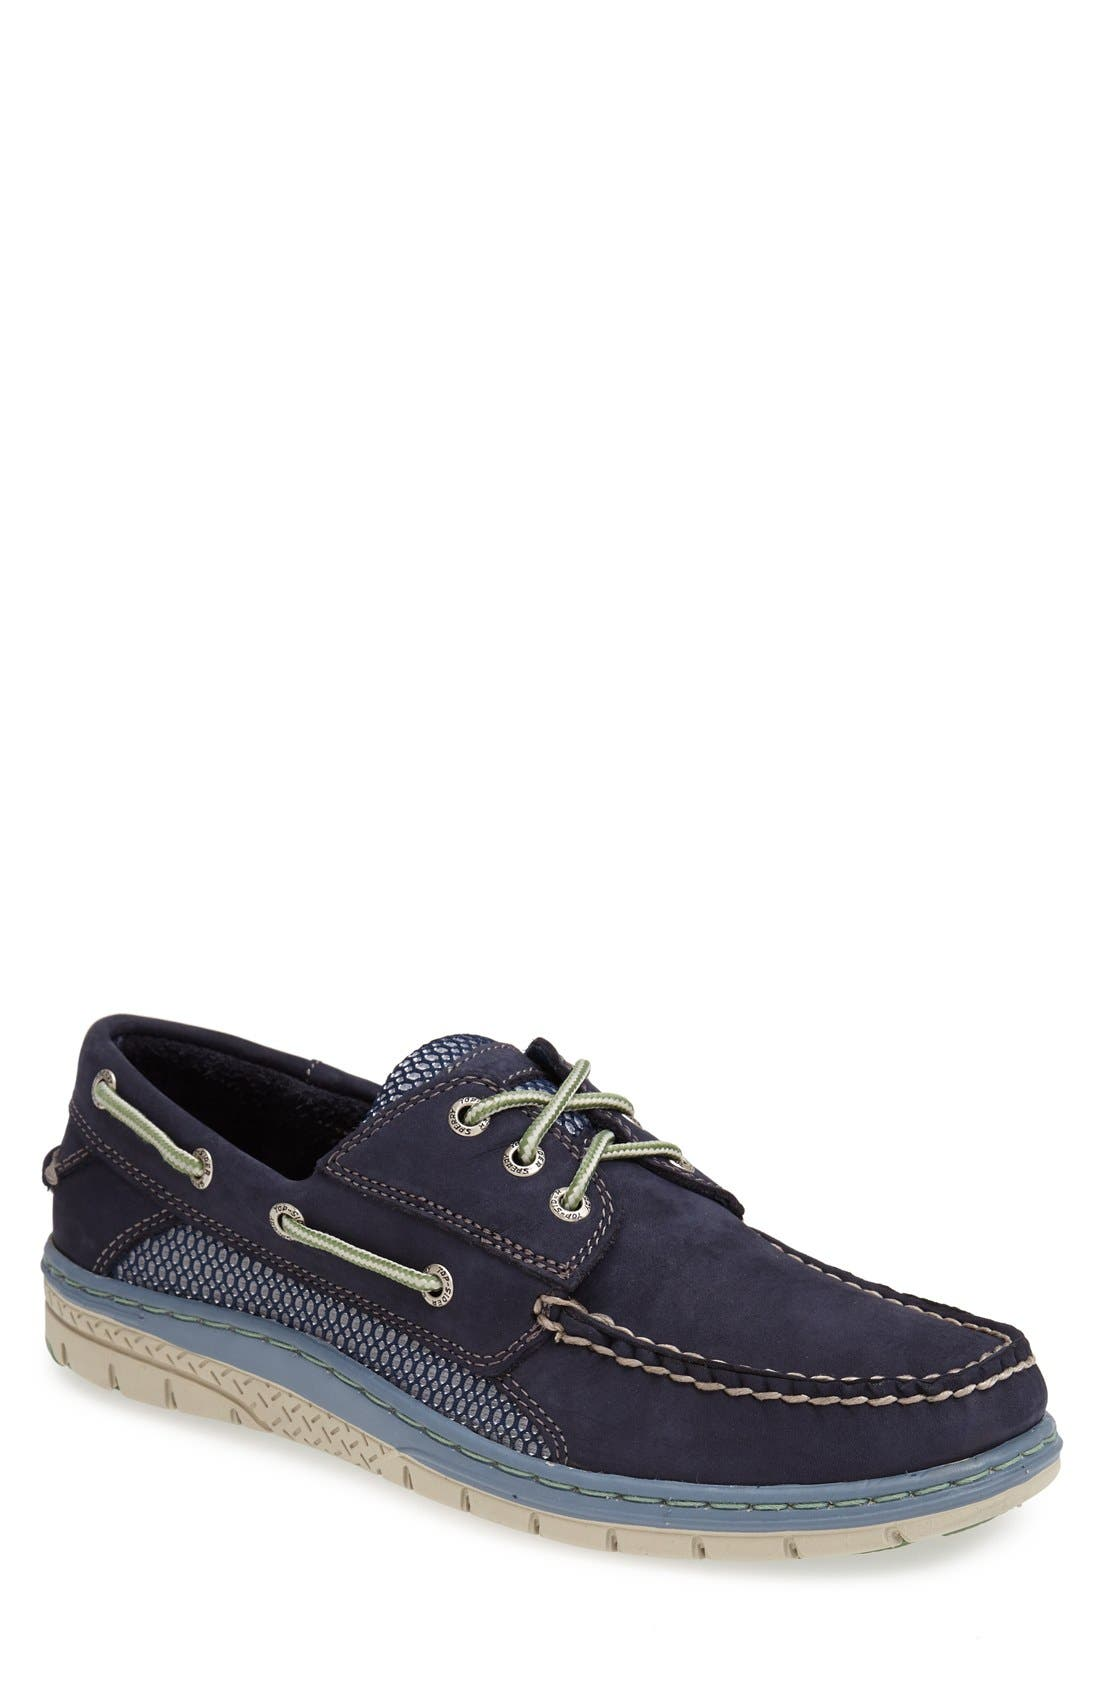 Alternate Image 1 Selected - Sperry 'Billfish Ultralite' Boat Shoe (Men)